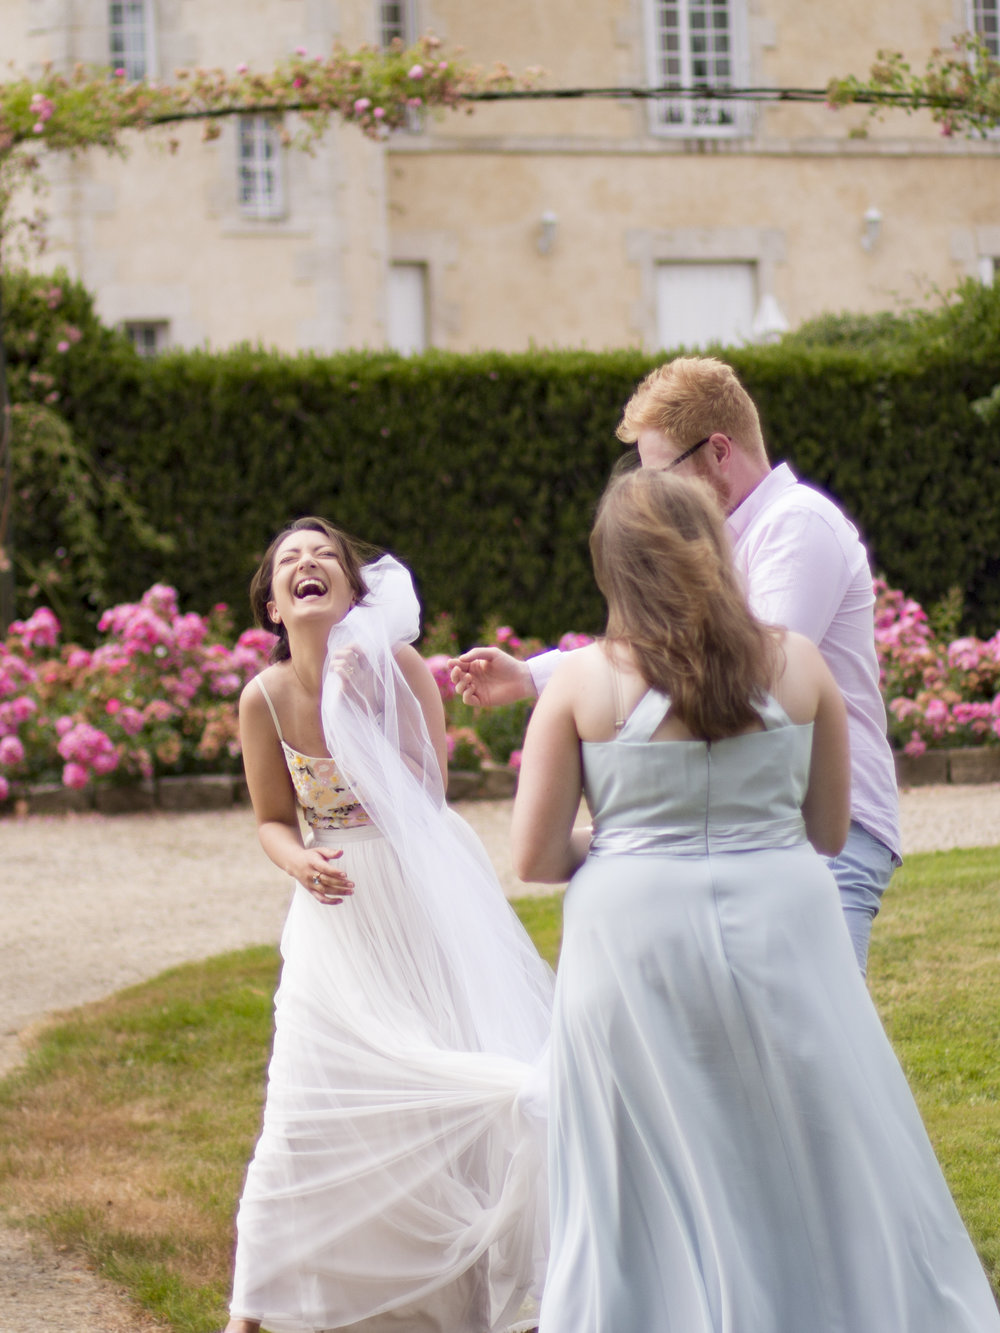 destination+wedding+chateau+de+la+bergeliere+la+flocelliere-3.jpeg